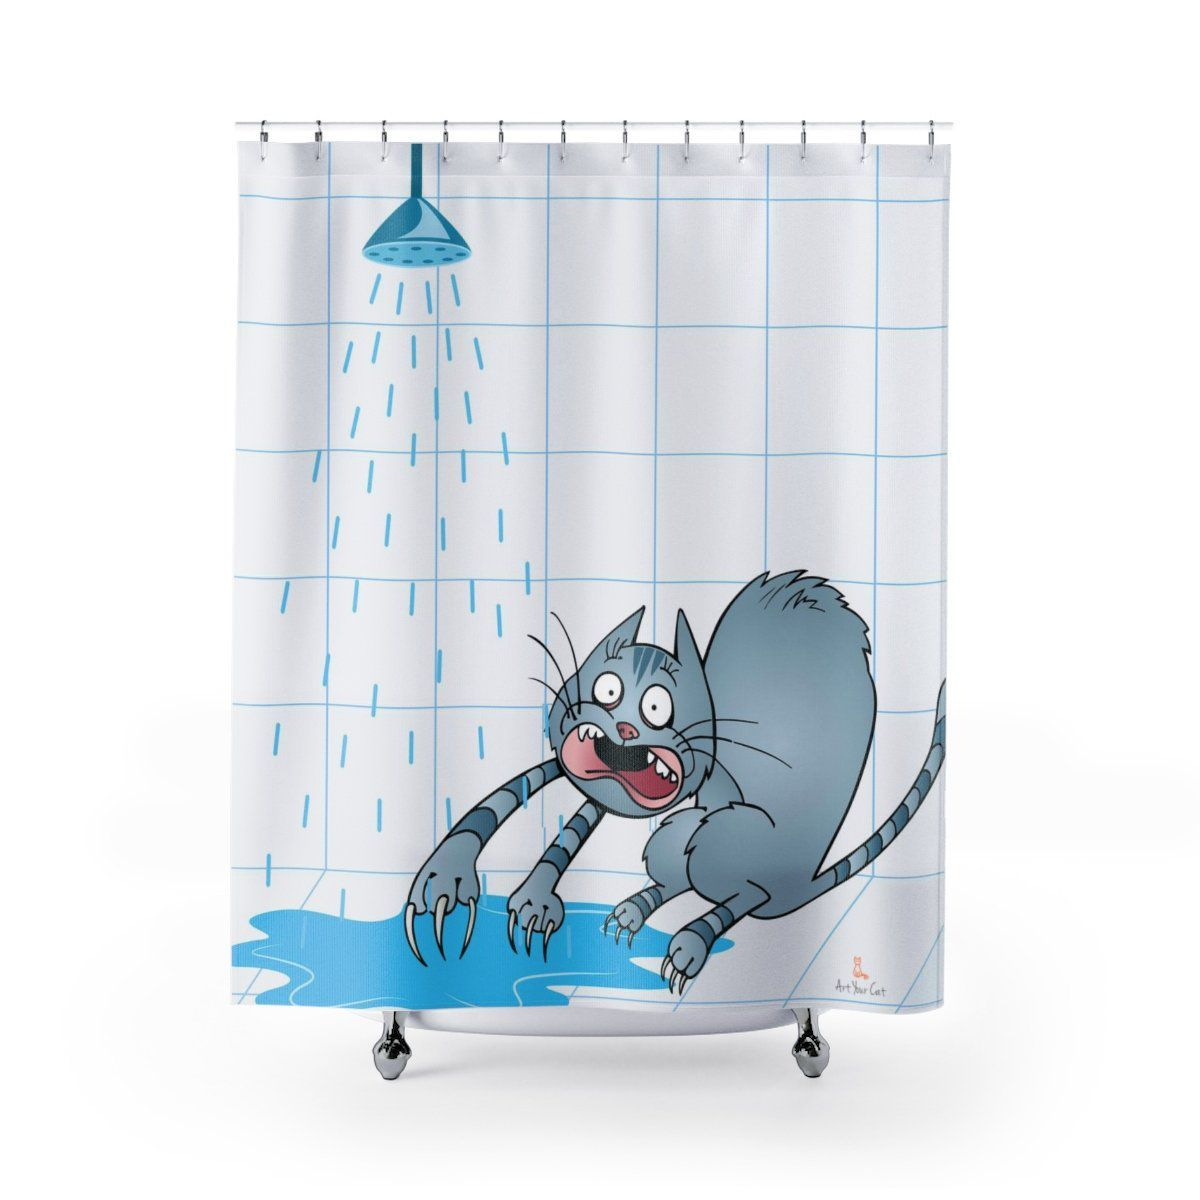 Art Your Cat Water Scaredy-Cat Shower Curtain